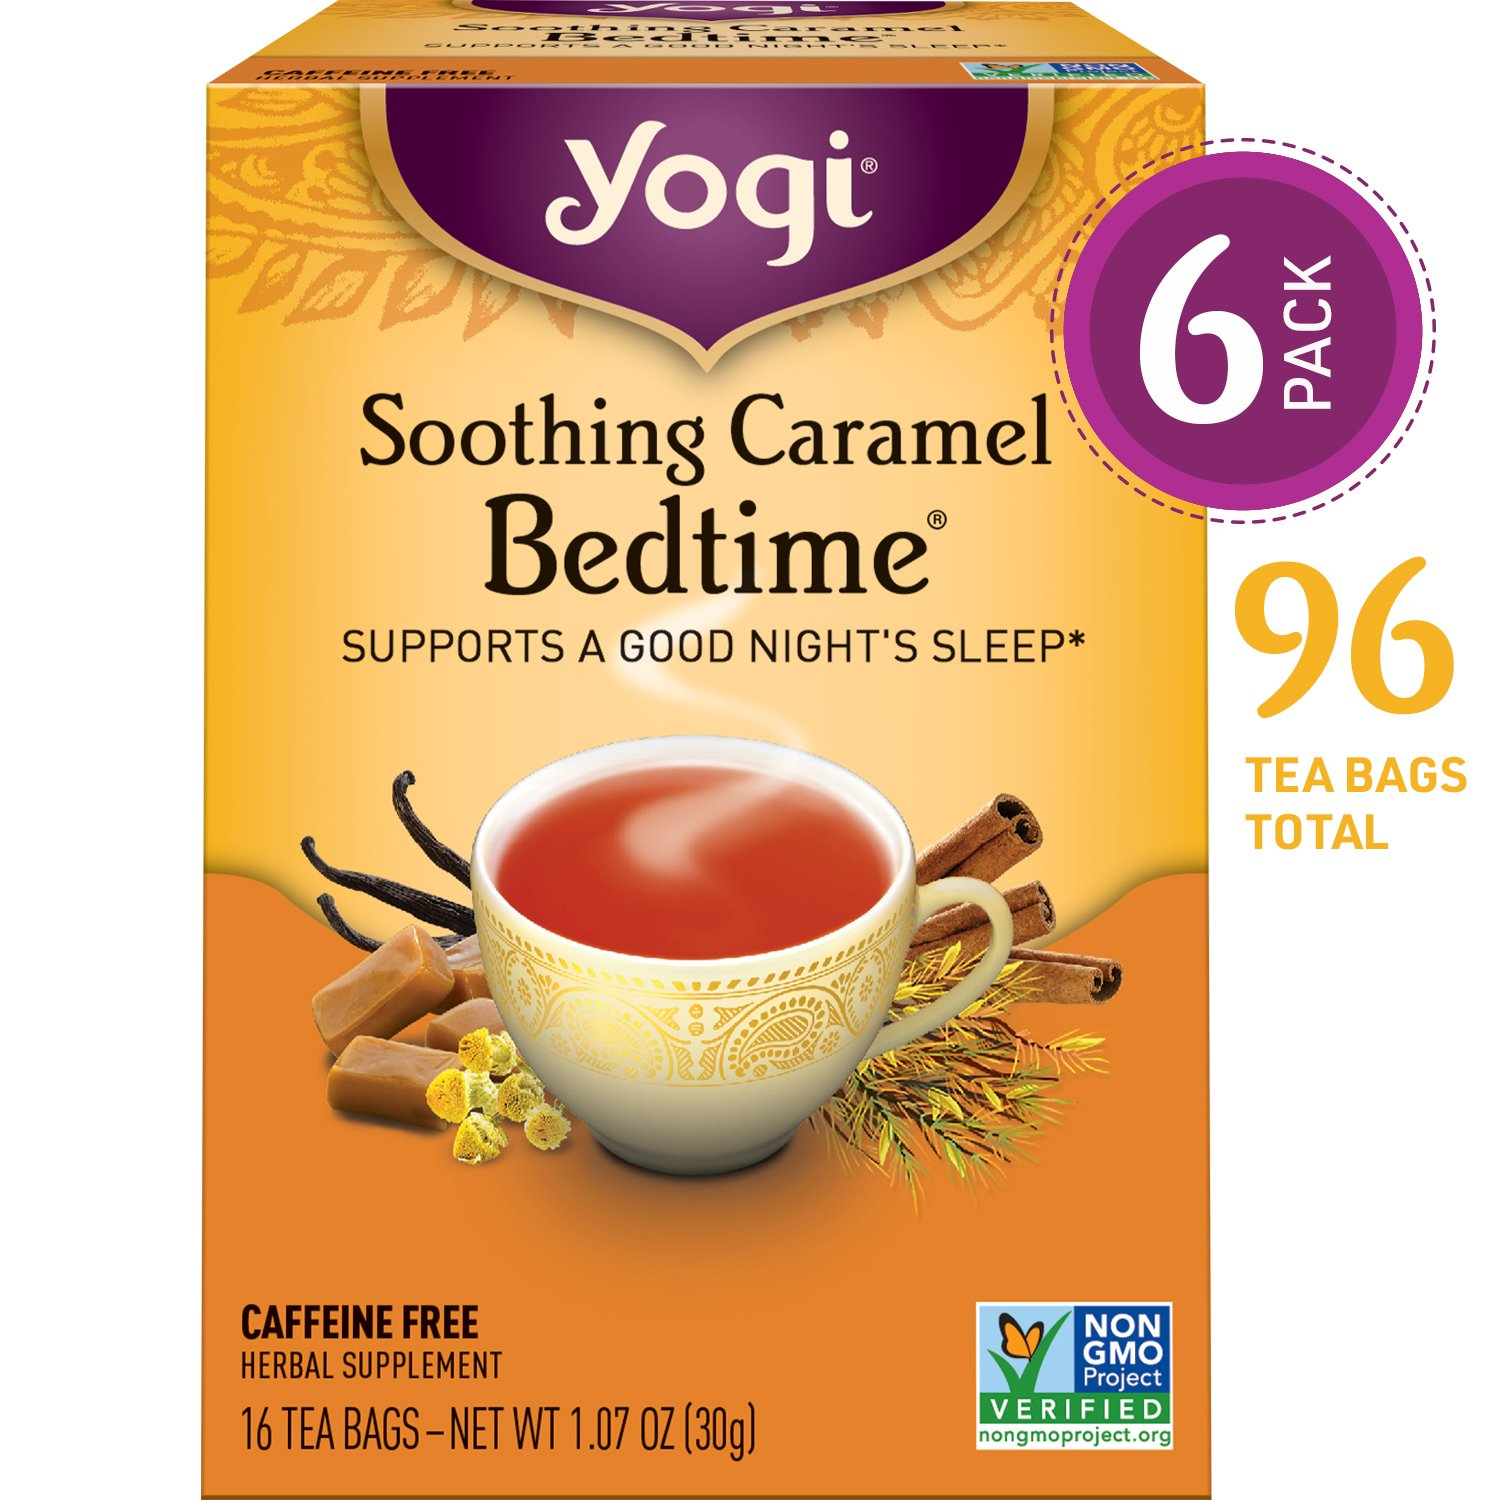 Yogi Tea - Soothing Caramel Bedtime - Supports a Good Night's Sleep - 6 Pack, 96 Tea Bags Total by Yogi